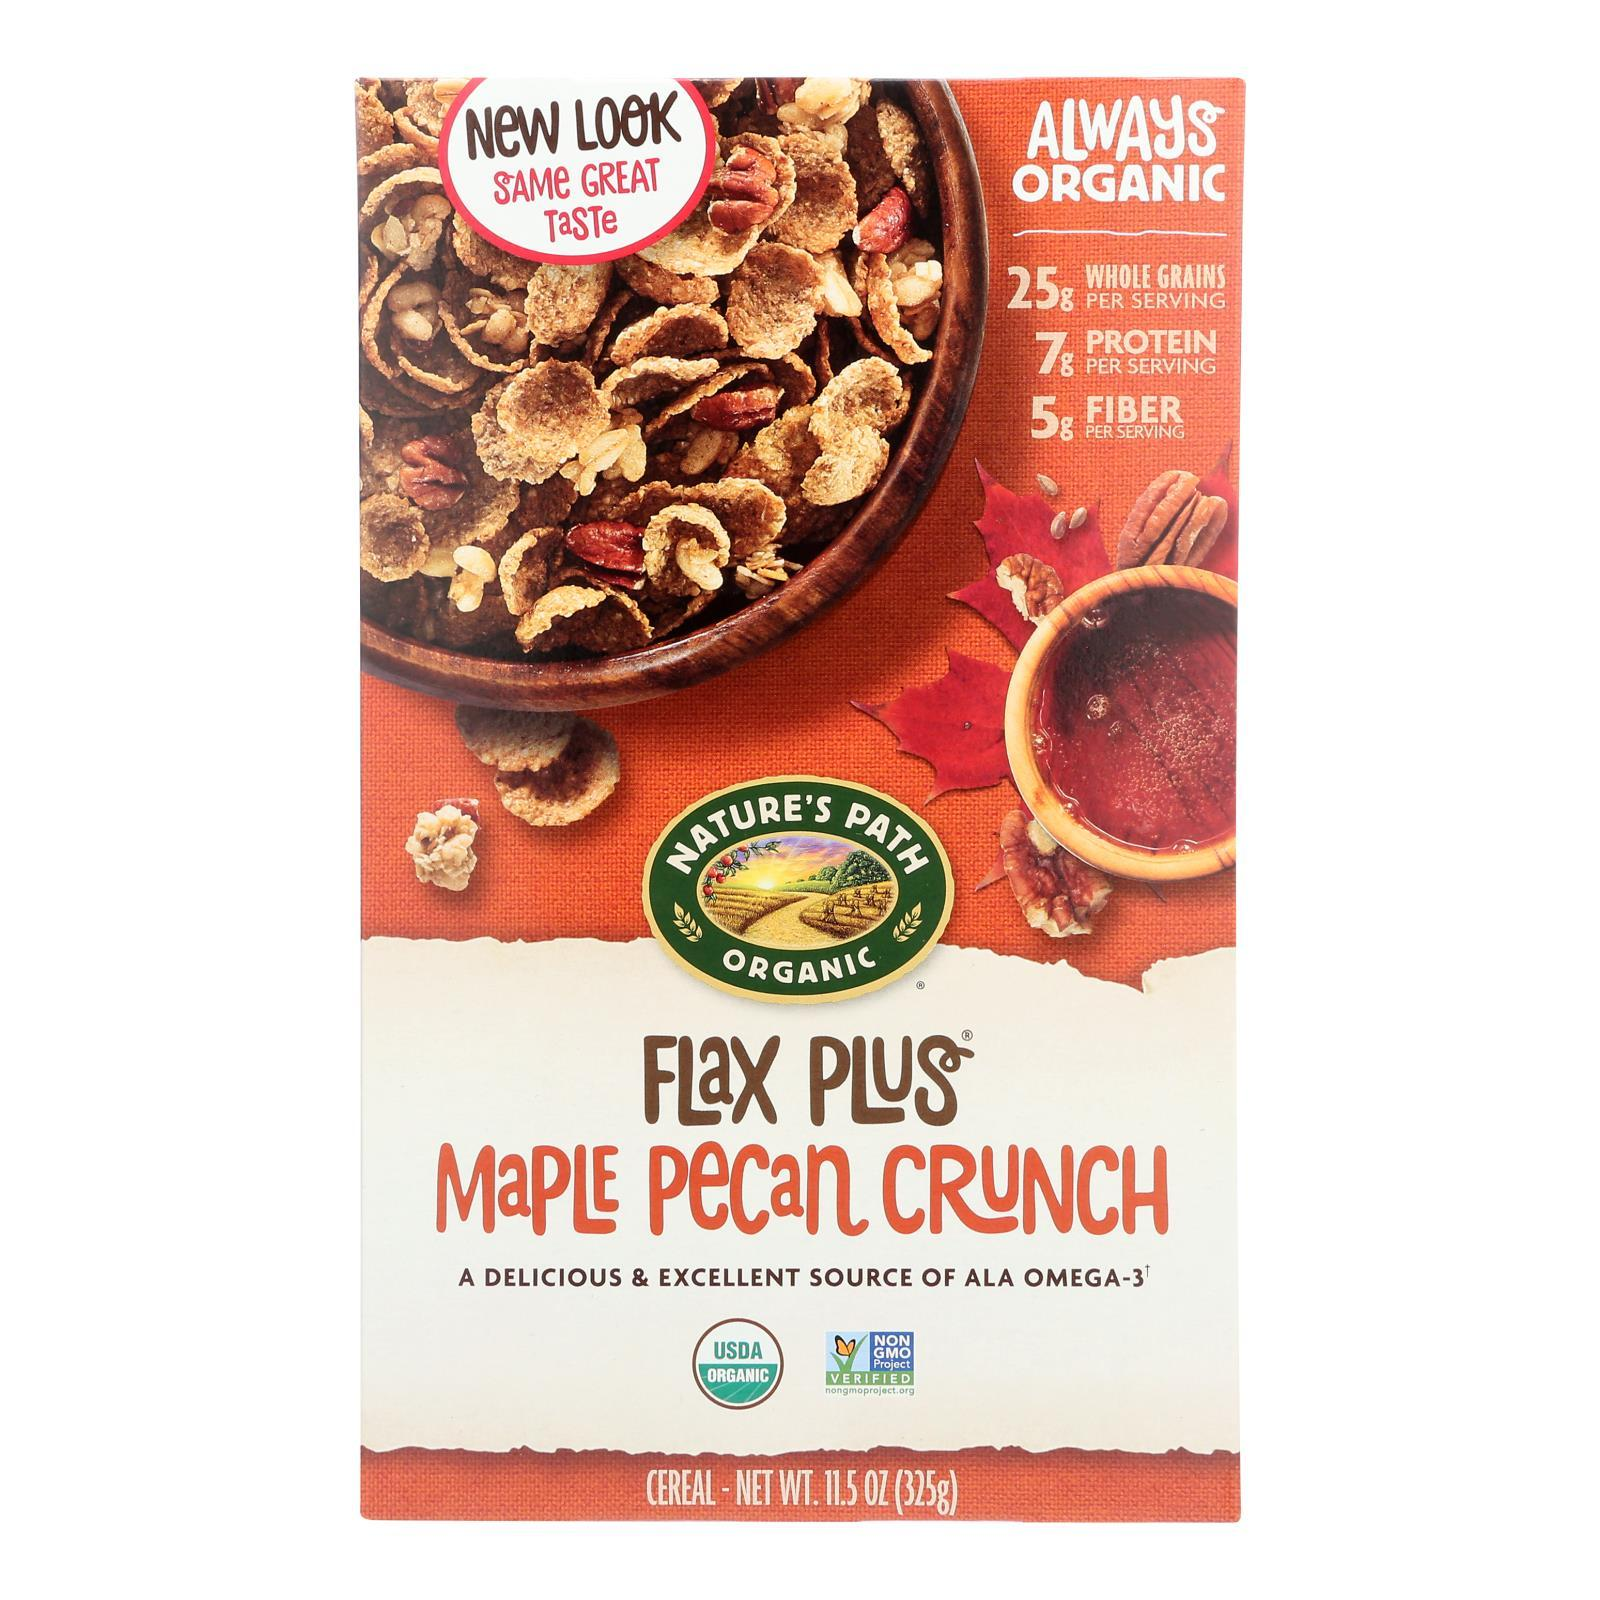 Nature's Path Maple Pecan Crunch - Flax Plus - Case Of 12 - 11.5 Oz. - BeeGreen